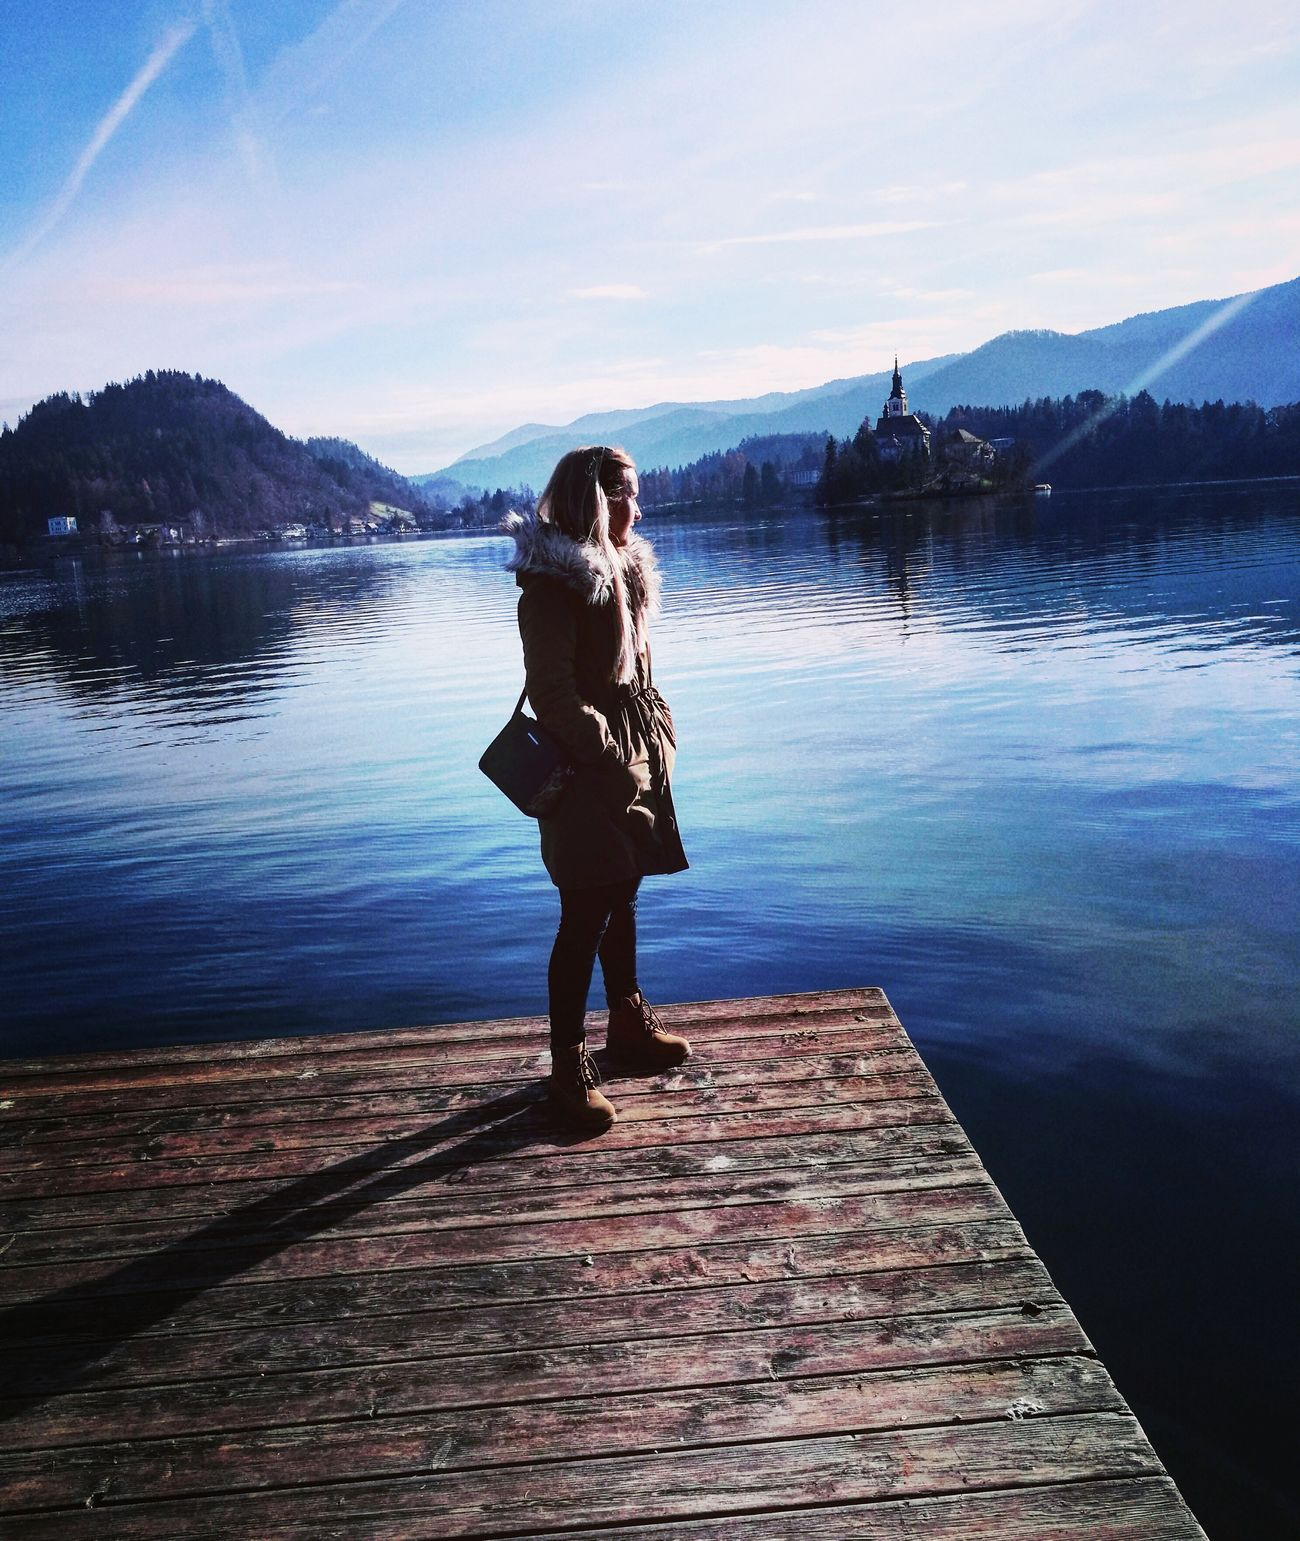 Sunny Day Sunny☀ Sunny Afternoon Lake Lake View Perfection❤❤❤ Autumn Colors Autumn🍁🍁🍁 Enjoying Life Enjoying The Sun Enjoying The View One Person Reflection Young Adult Only Women One Young Woman Only One Woman Only Full Length People Adults Only Young Women Sky Water Adult Freedom